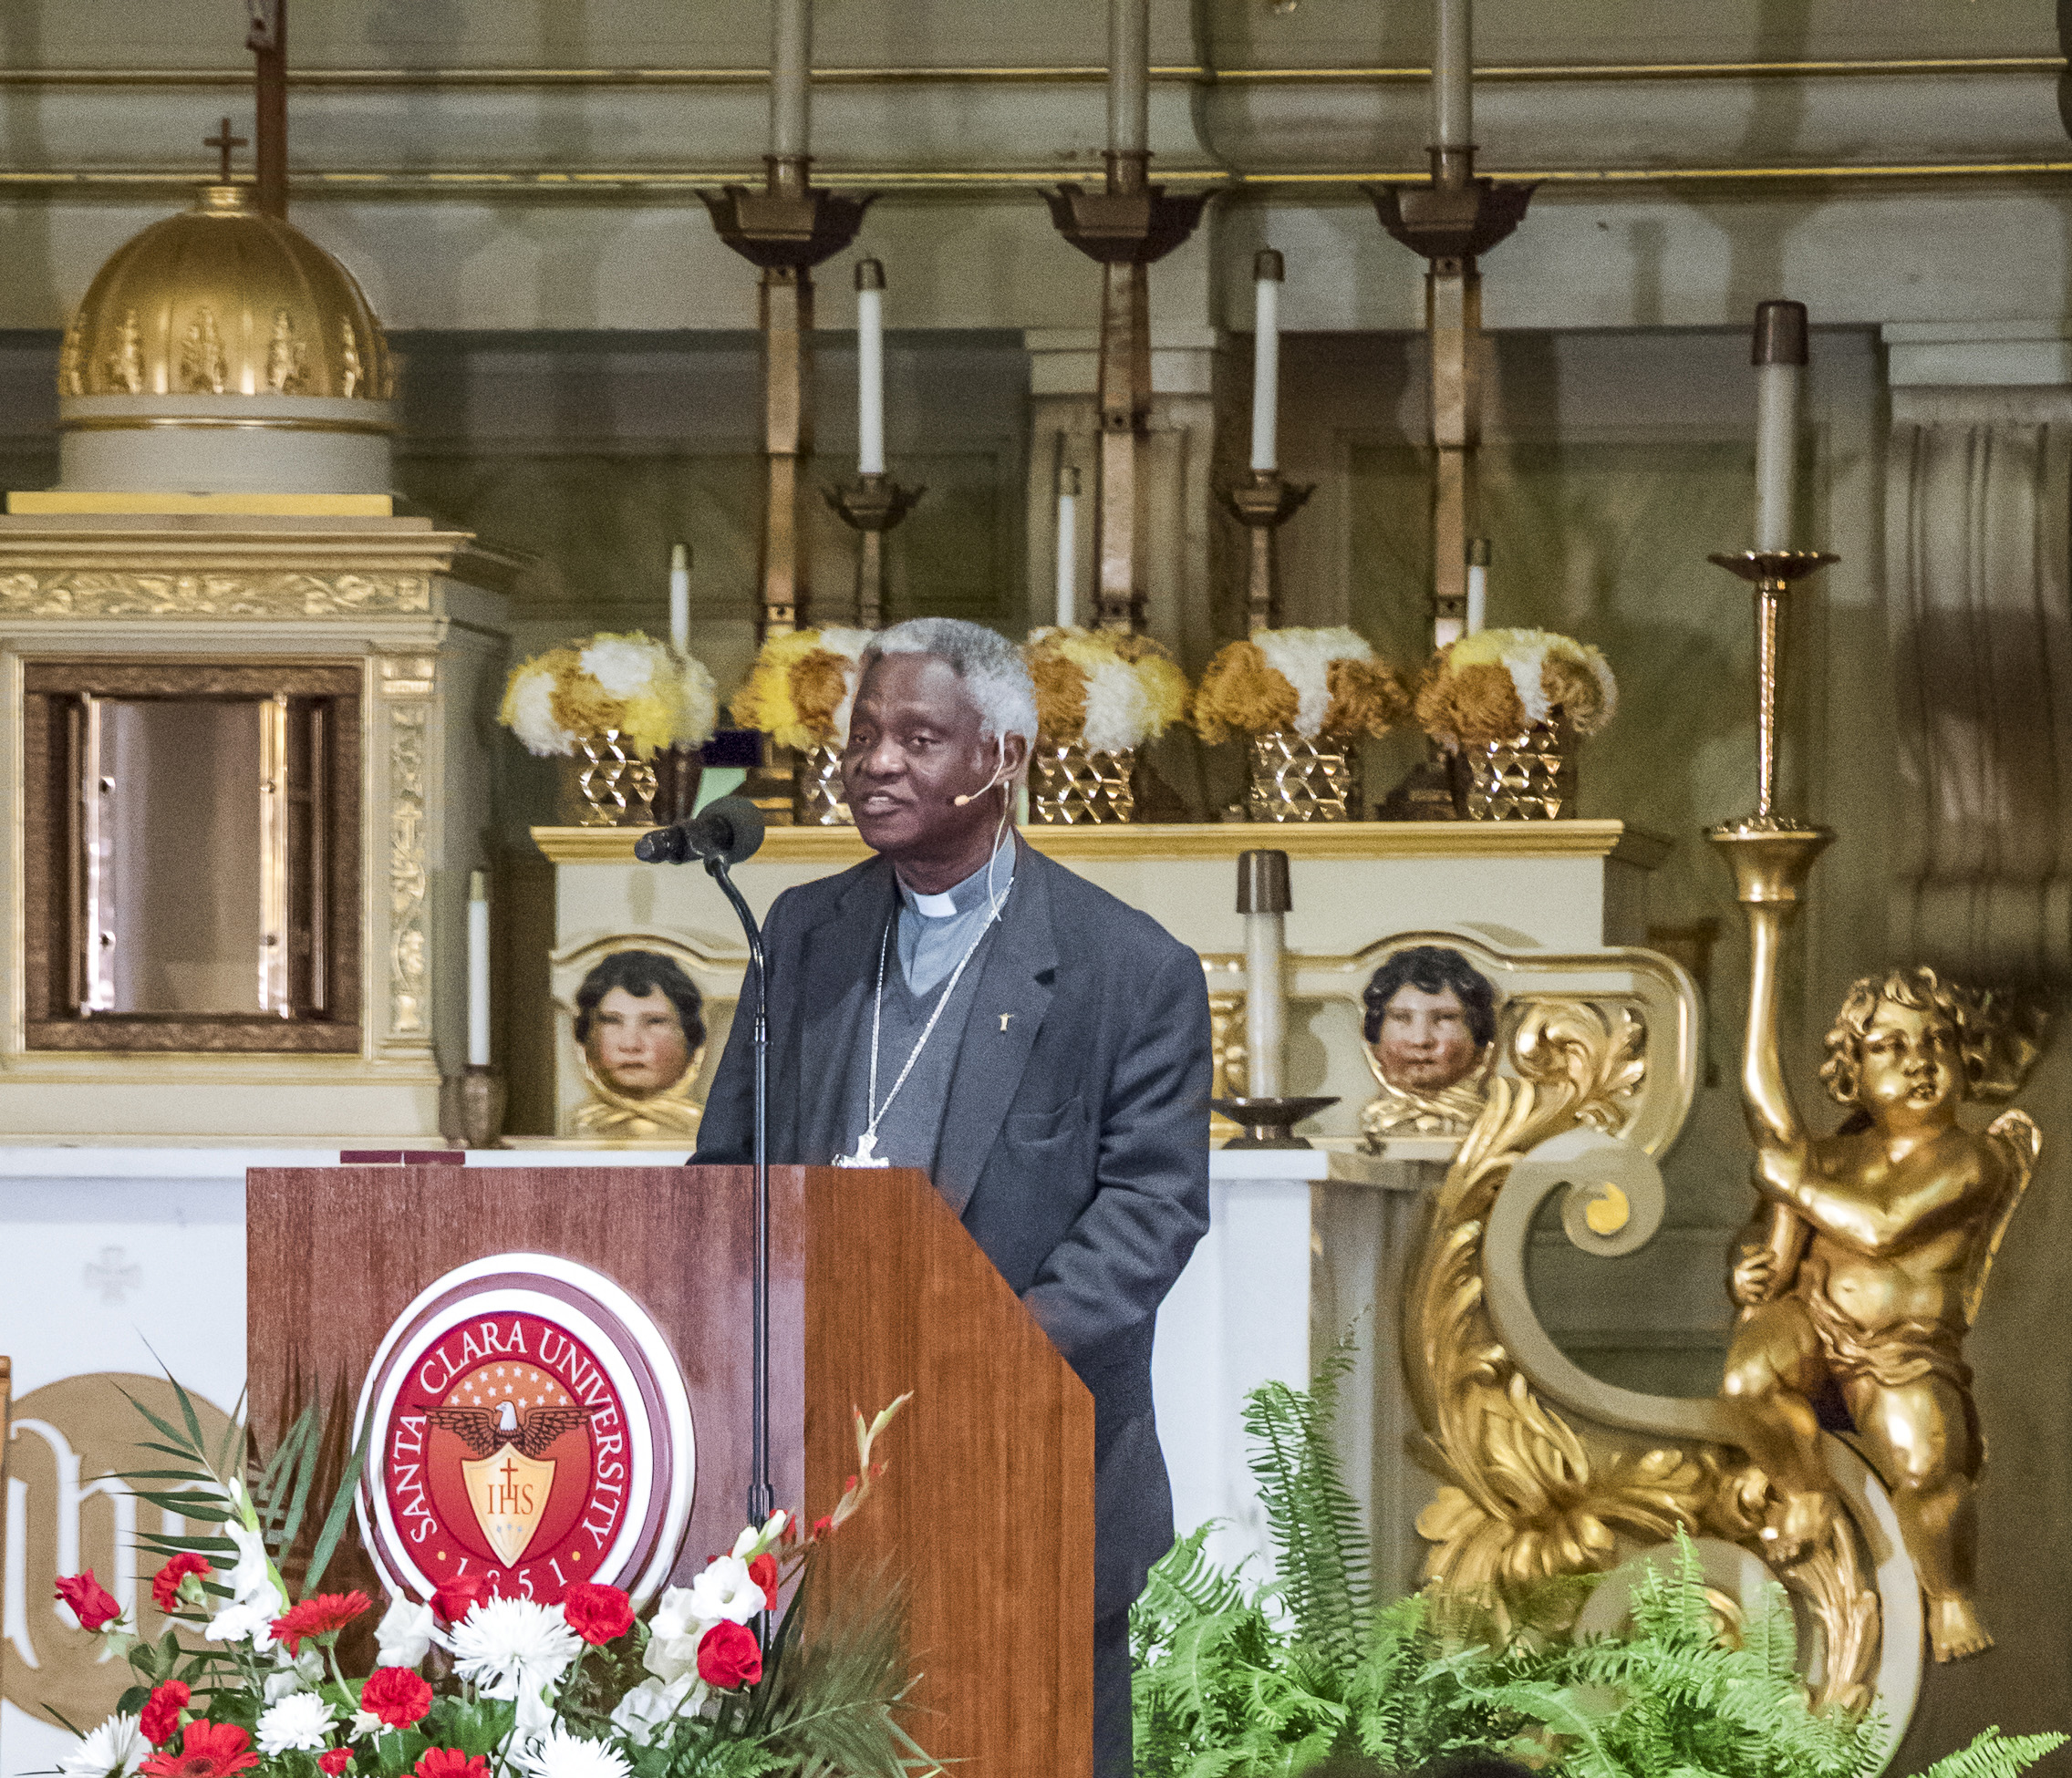 Cardinal Peter Turkson giving a keynote speech on Nov. 3, 2015 at Santa Clara's Mission Church (Photo by Joanne Lee, Santa Clara University)